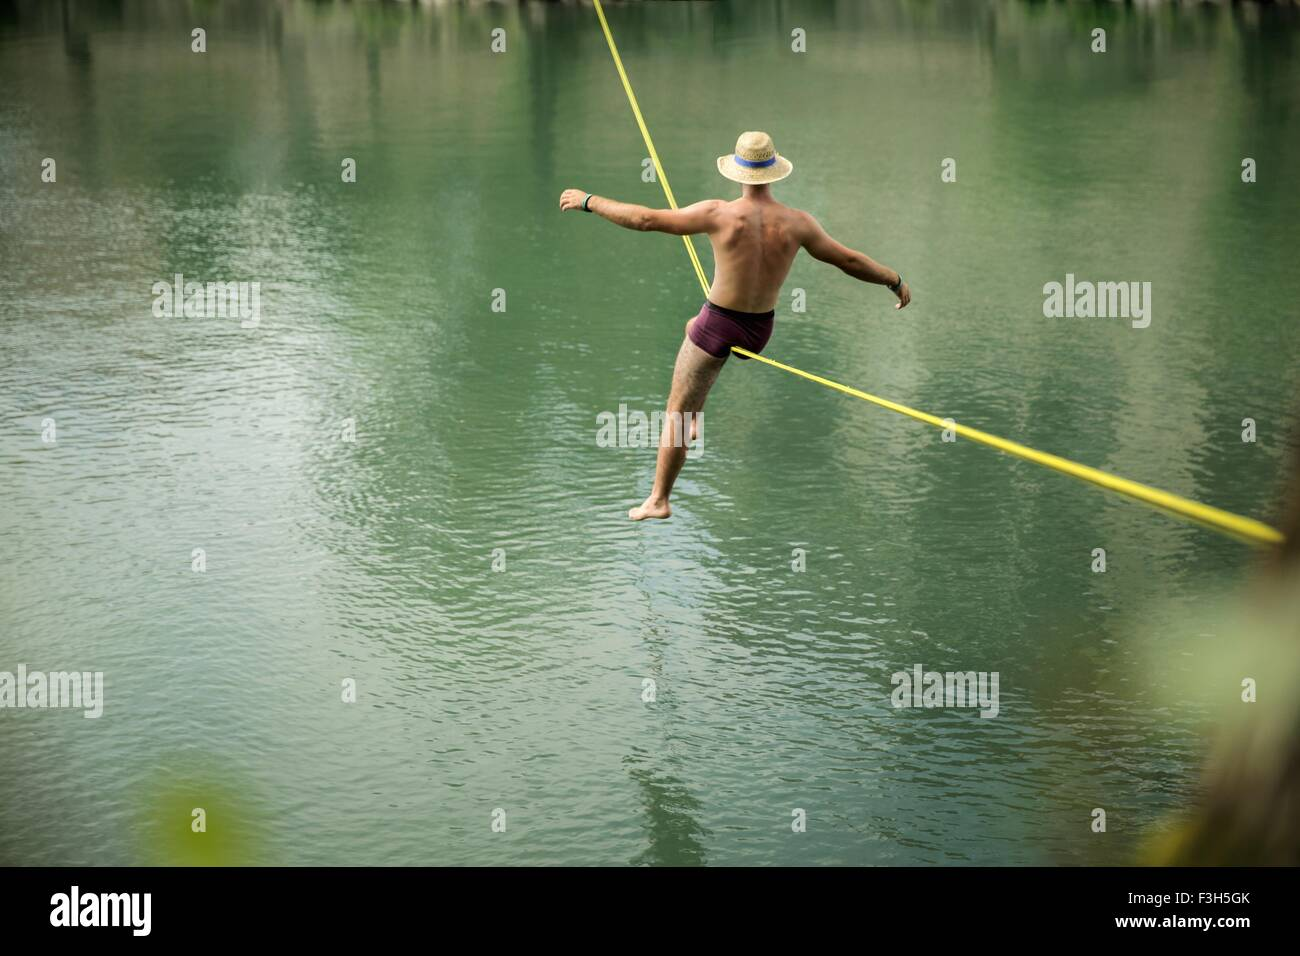 Mature man balancing on rope over lake, rear view - Stock Image